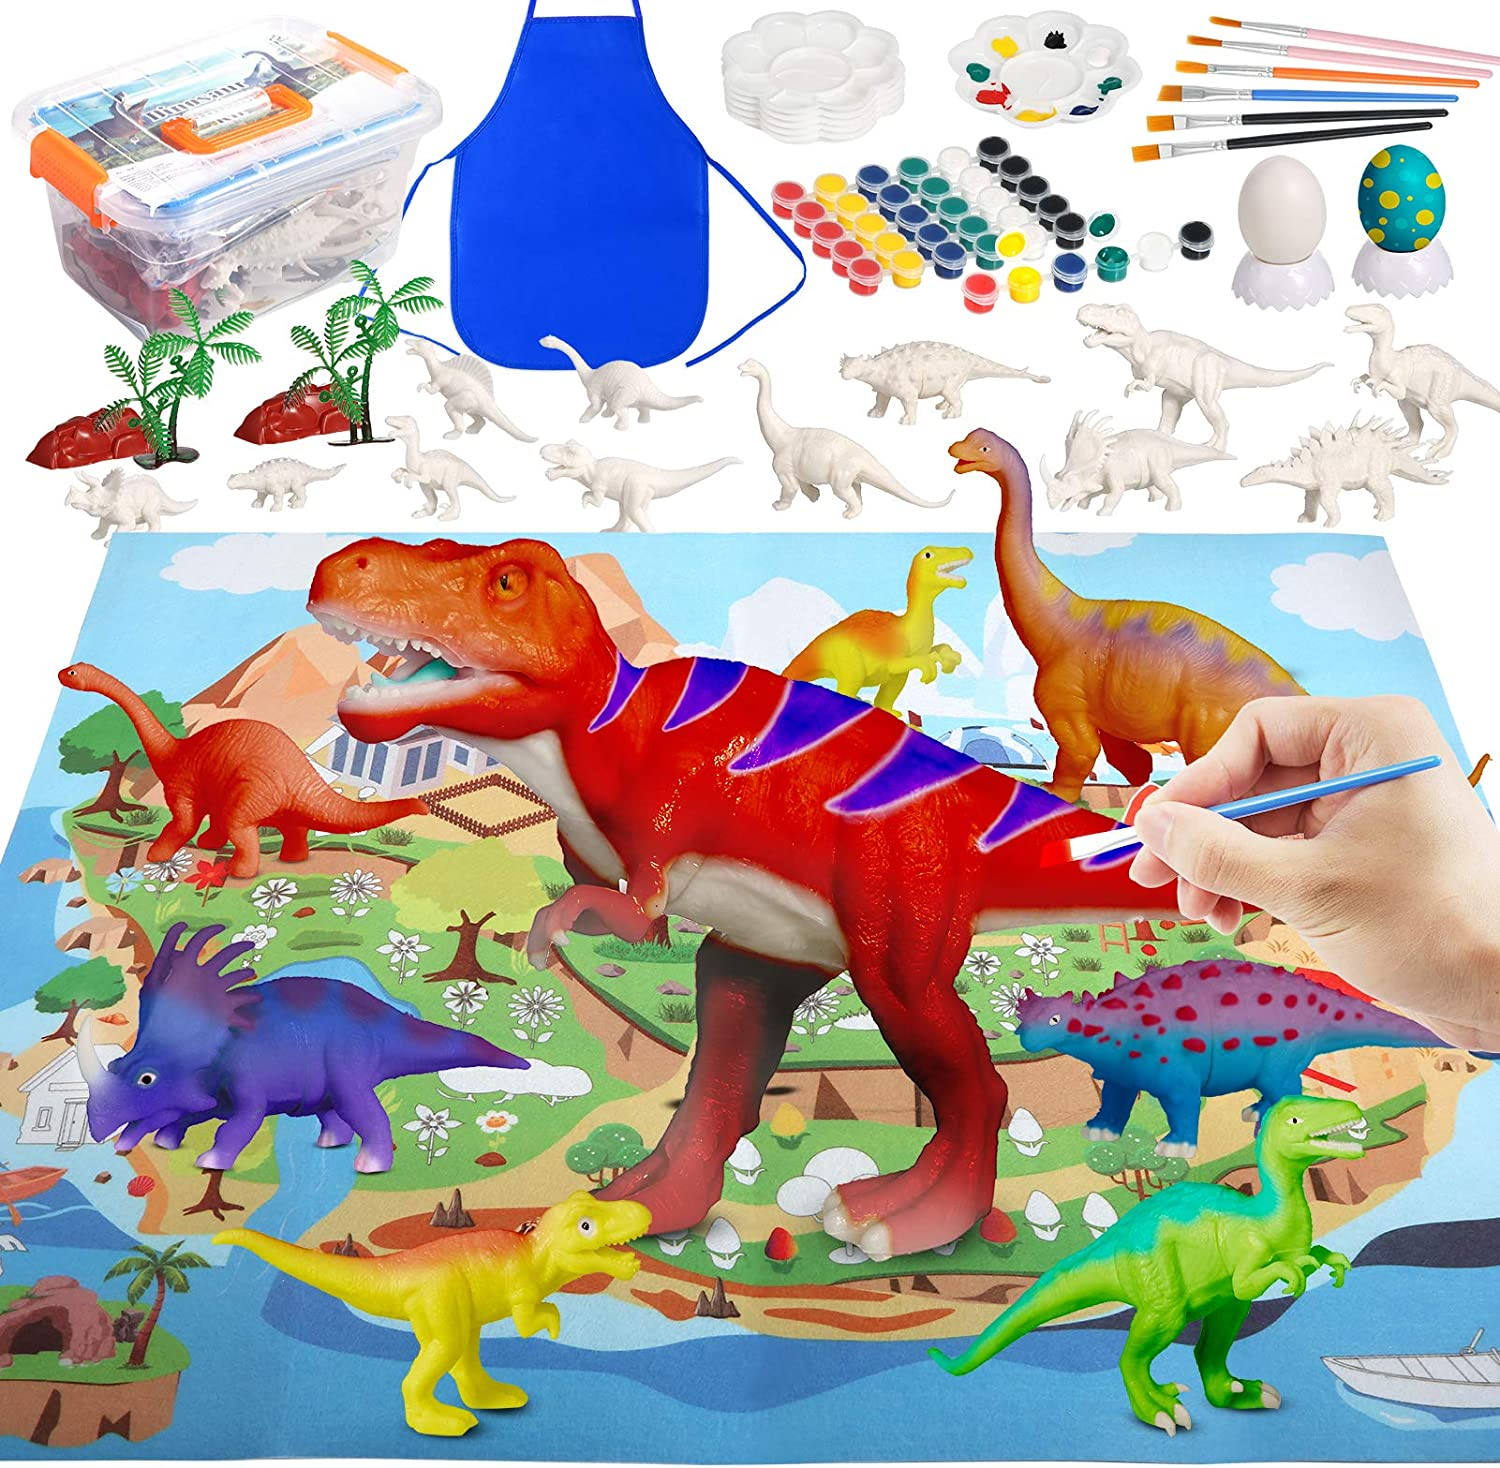 PP OPOUNT Fashionable At the price 71Pcs Dinosaur Painting Kit Crafts for Kids Arts and